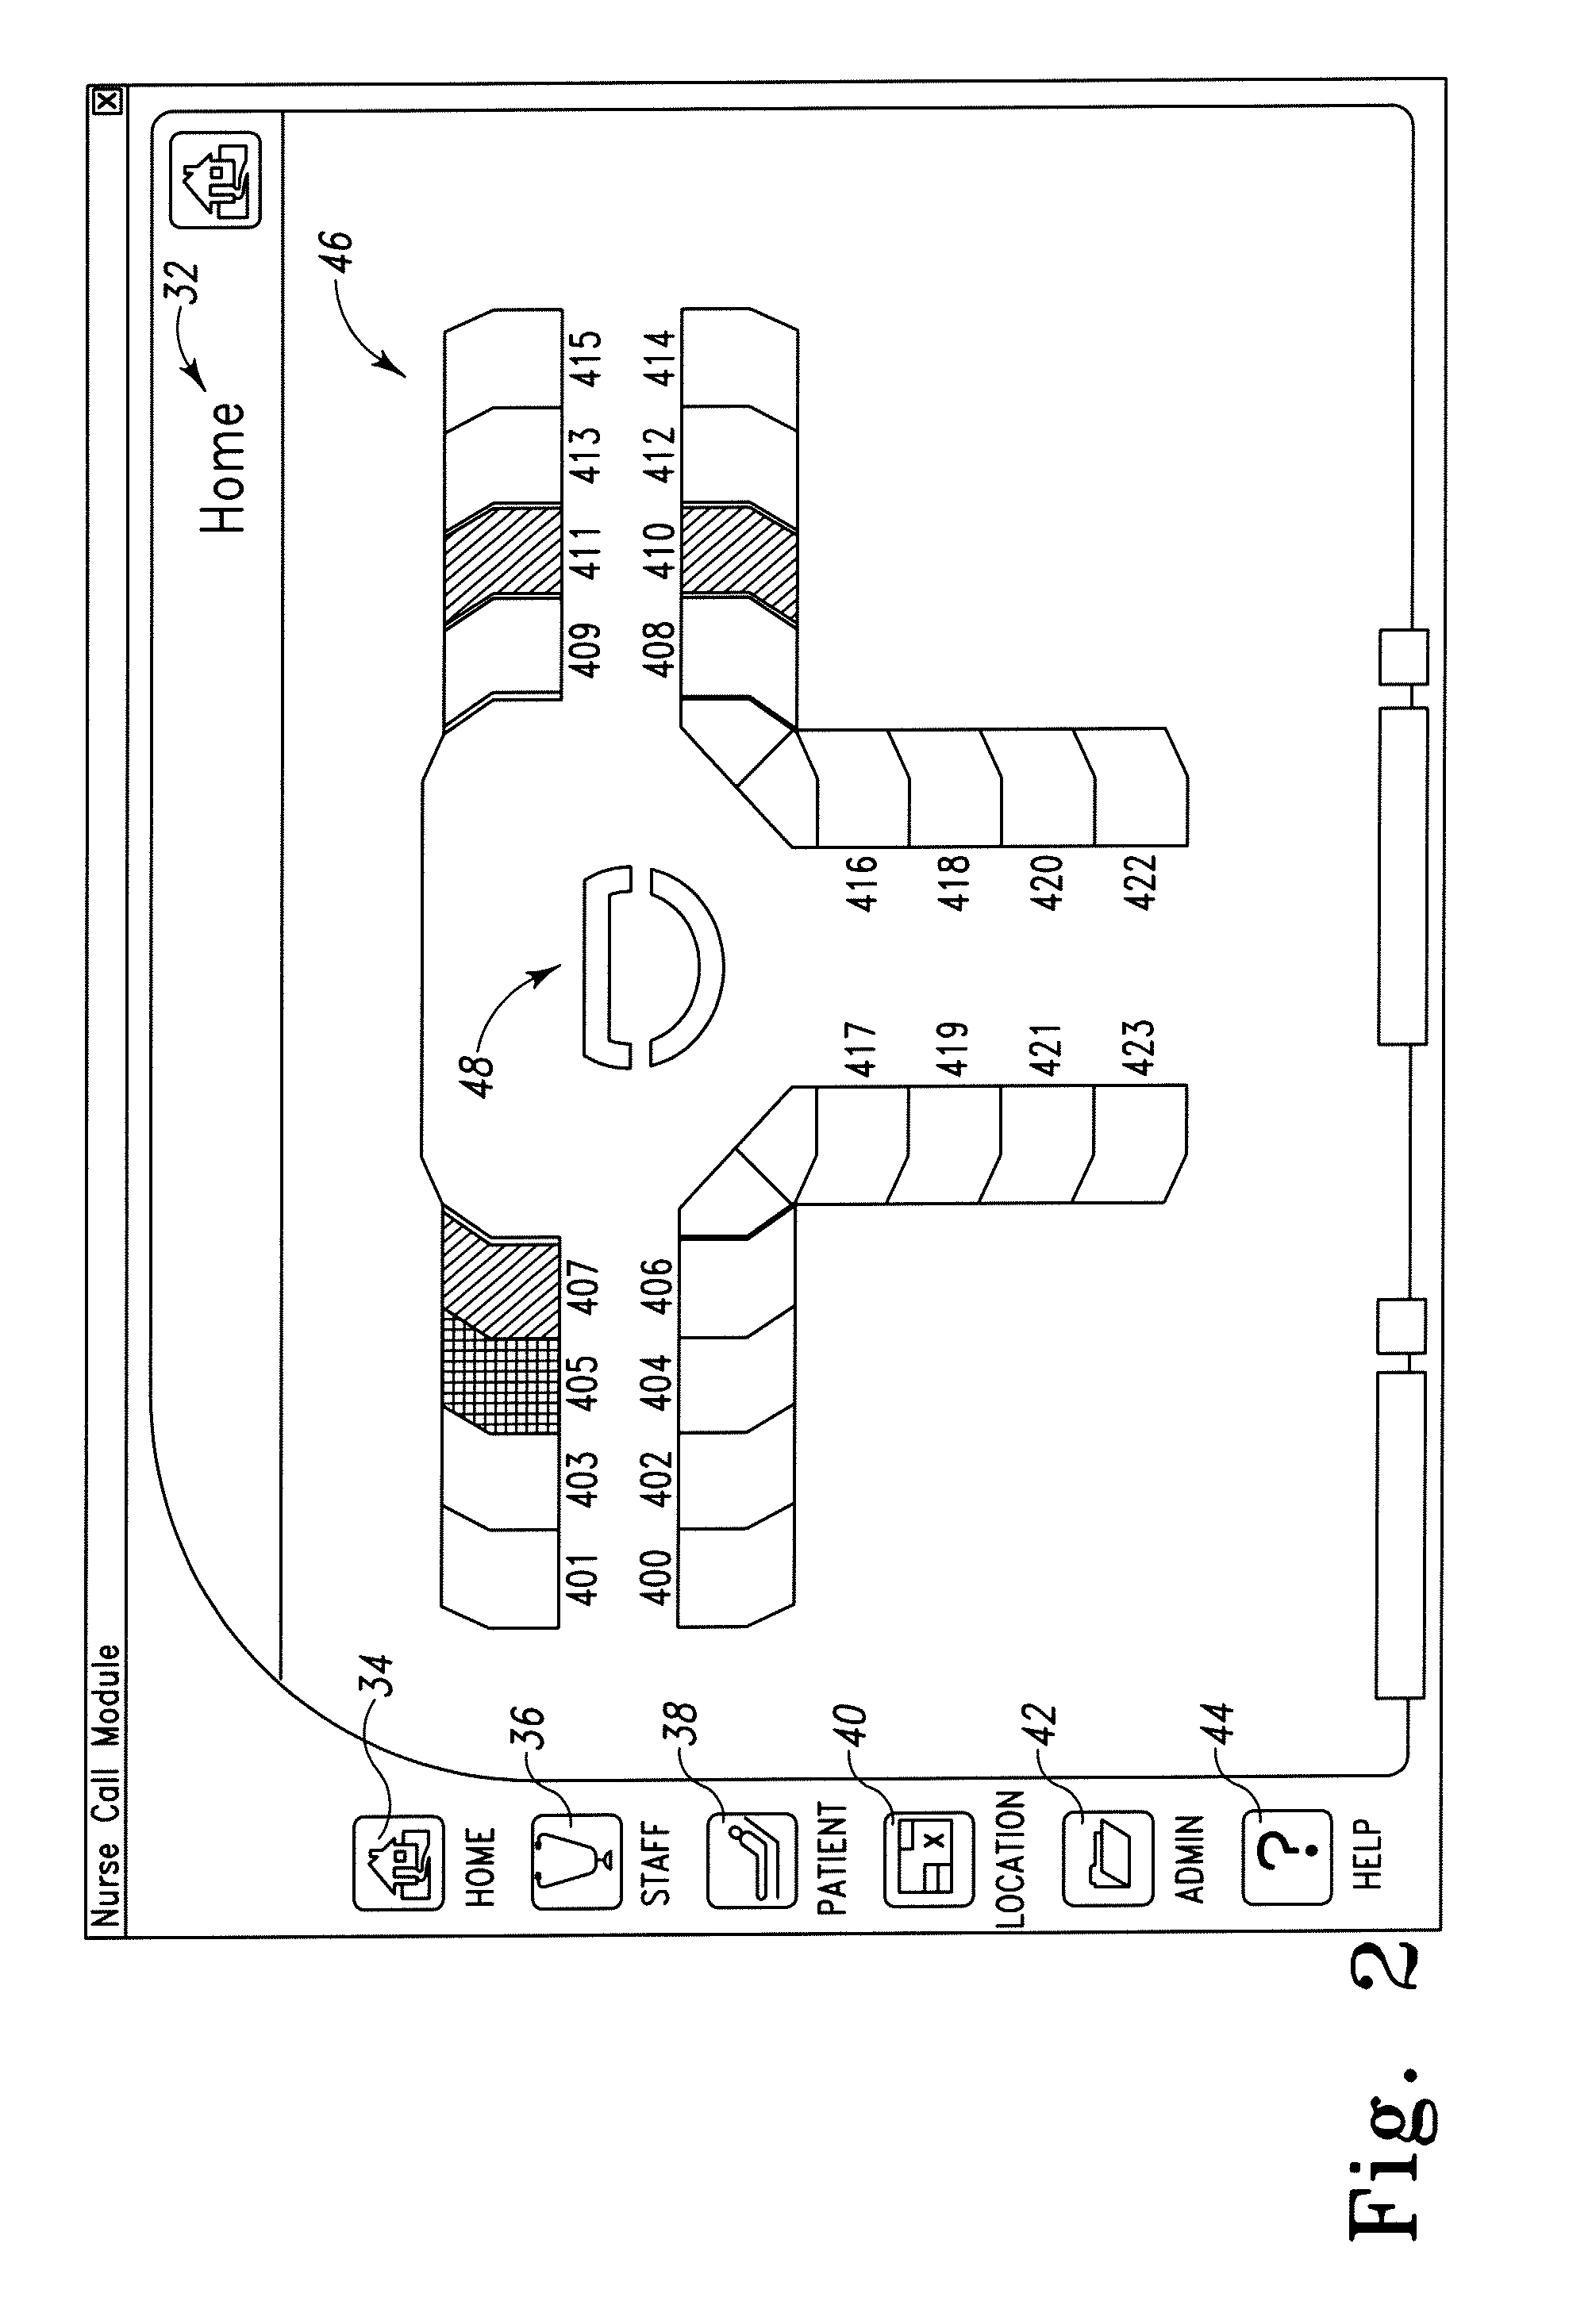 Drager Wiring Diagram For Nurse Call Cable,Wiring